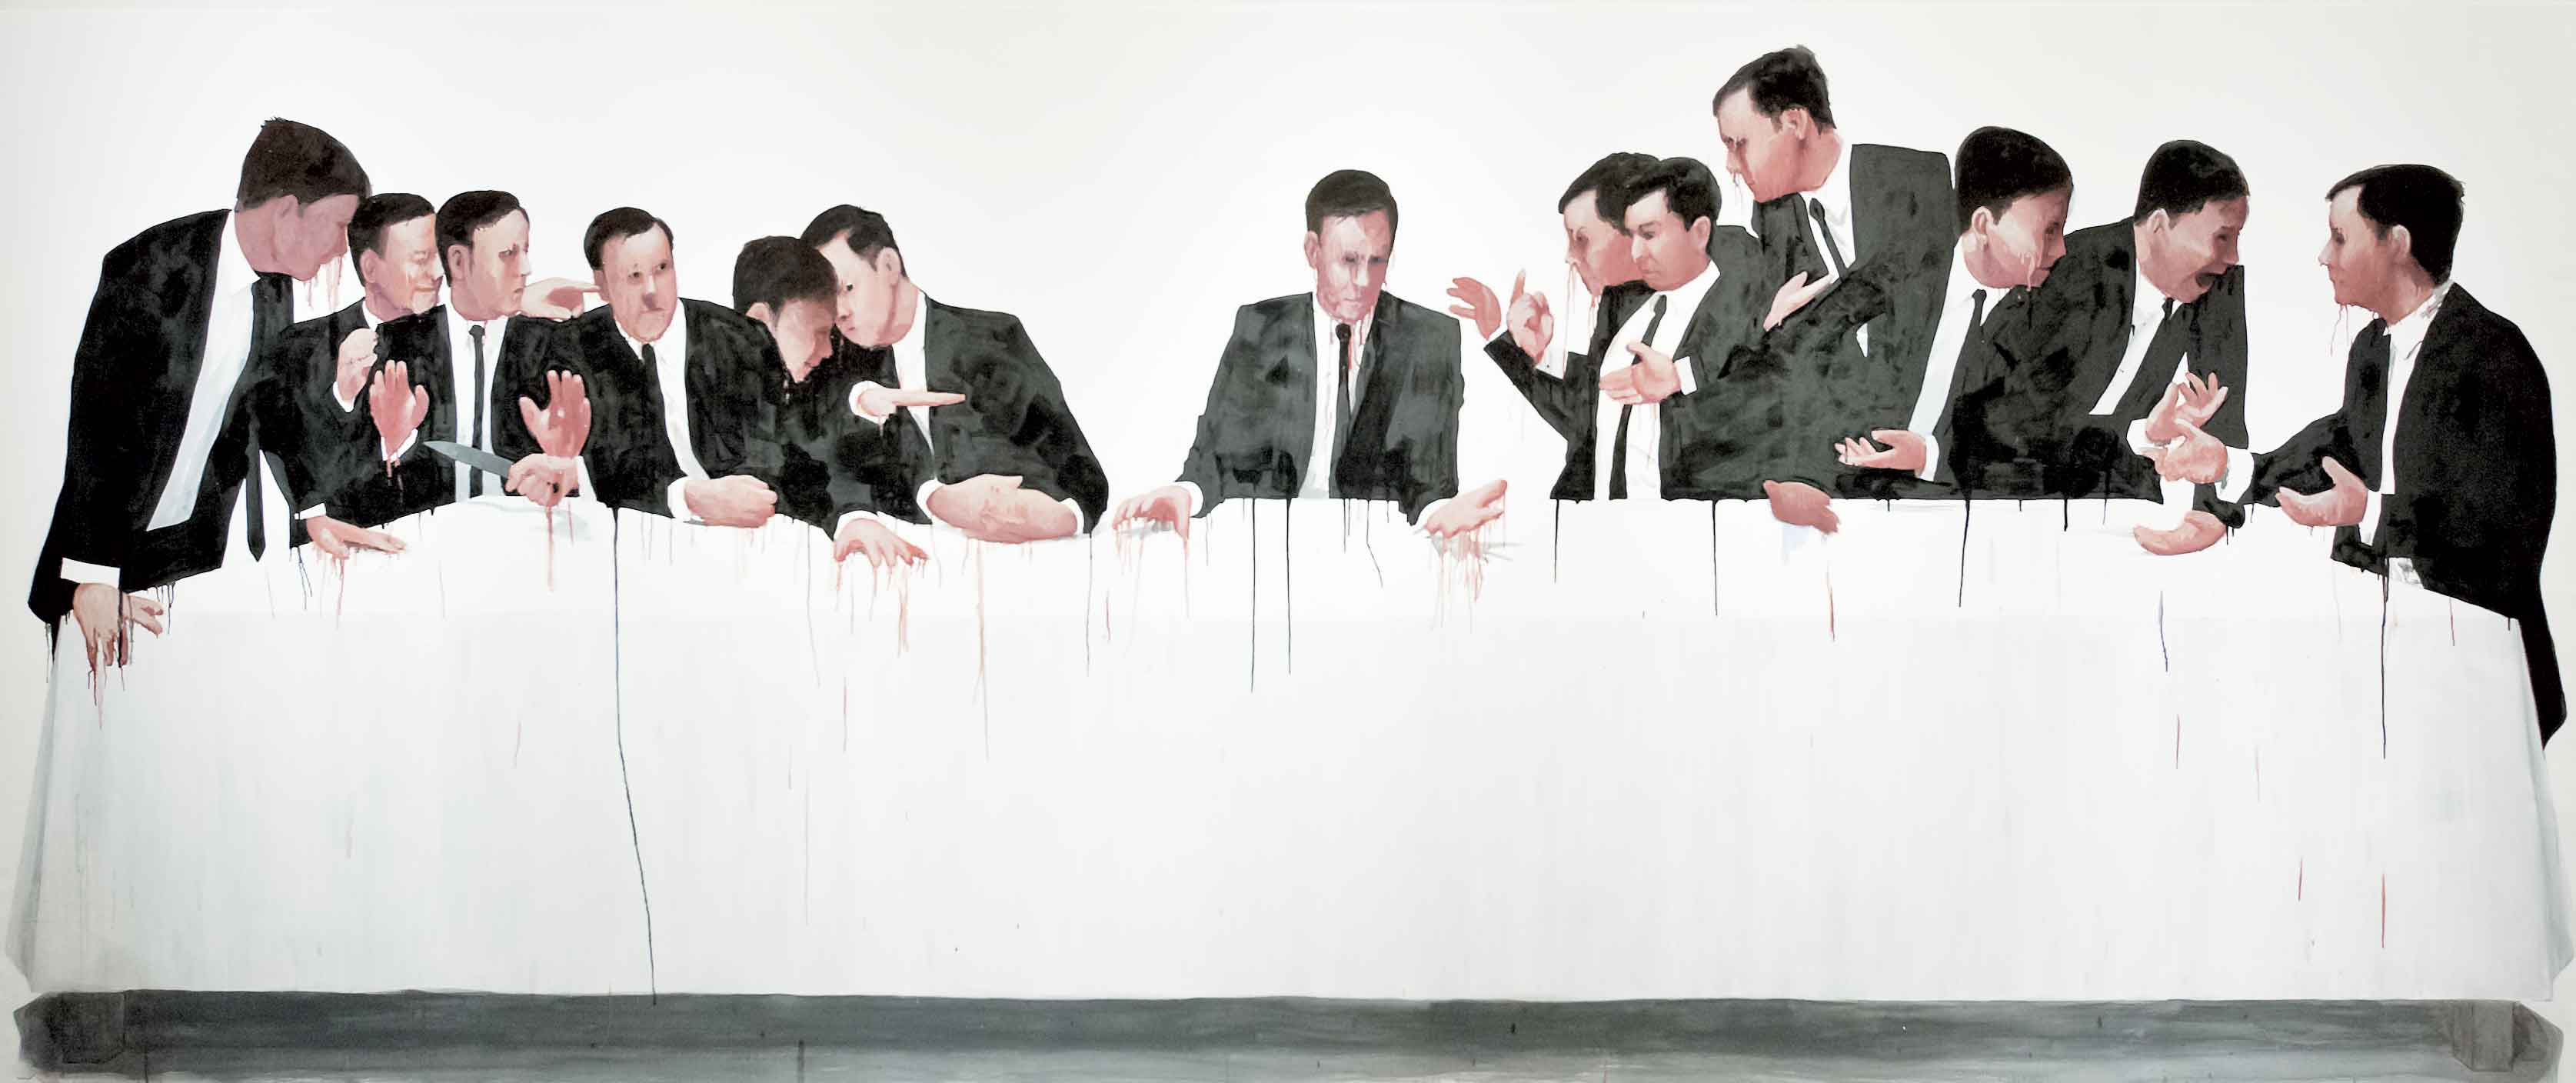 artpulse magazine features institutional stress when erik sigerud post mortem 2009 oil and vinyl on canvas 74 8